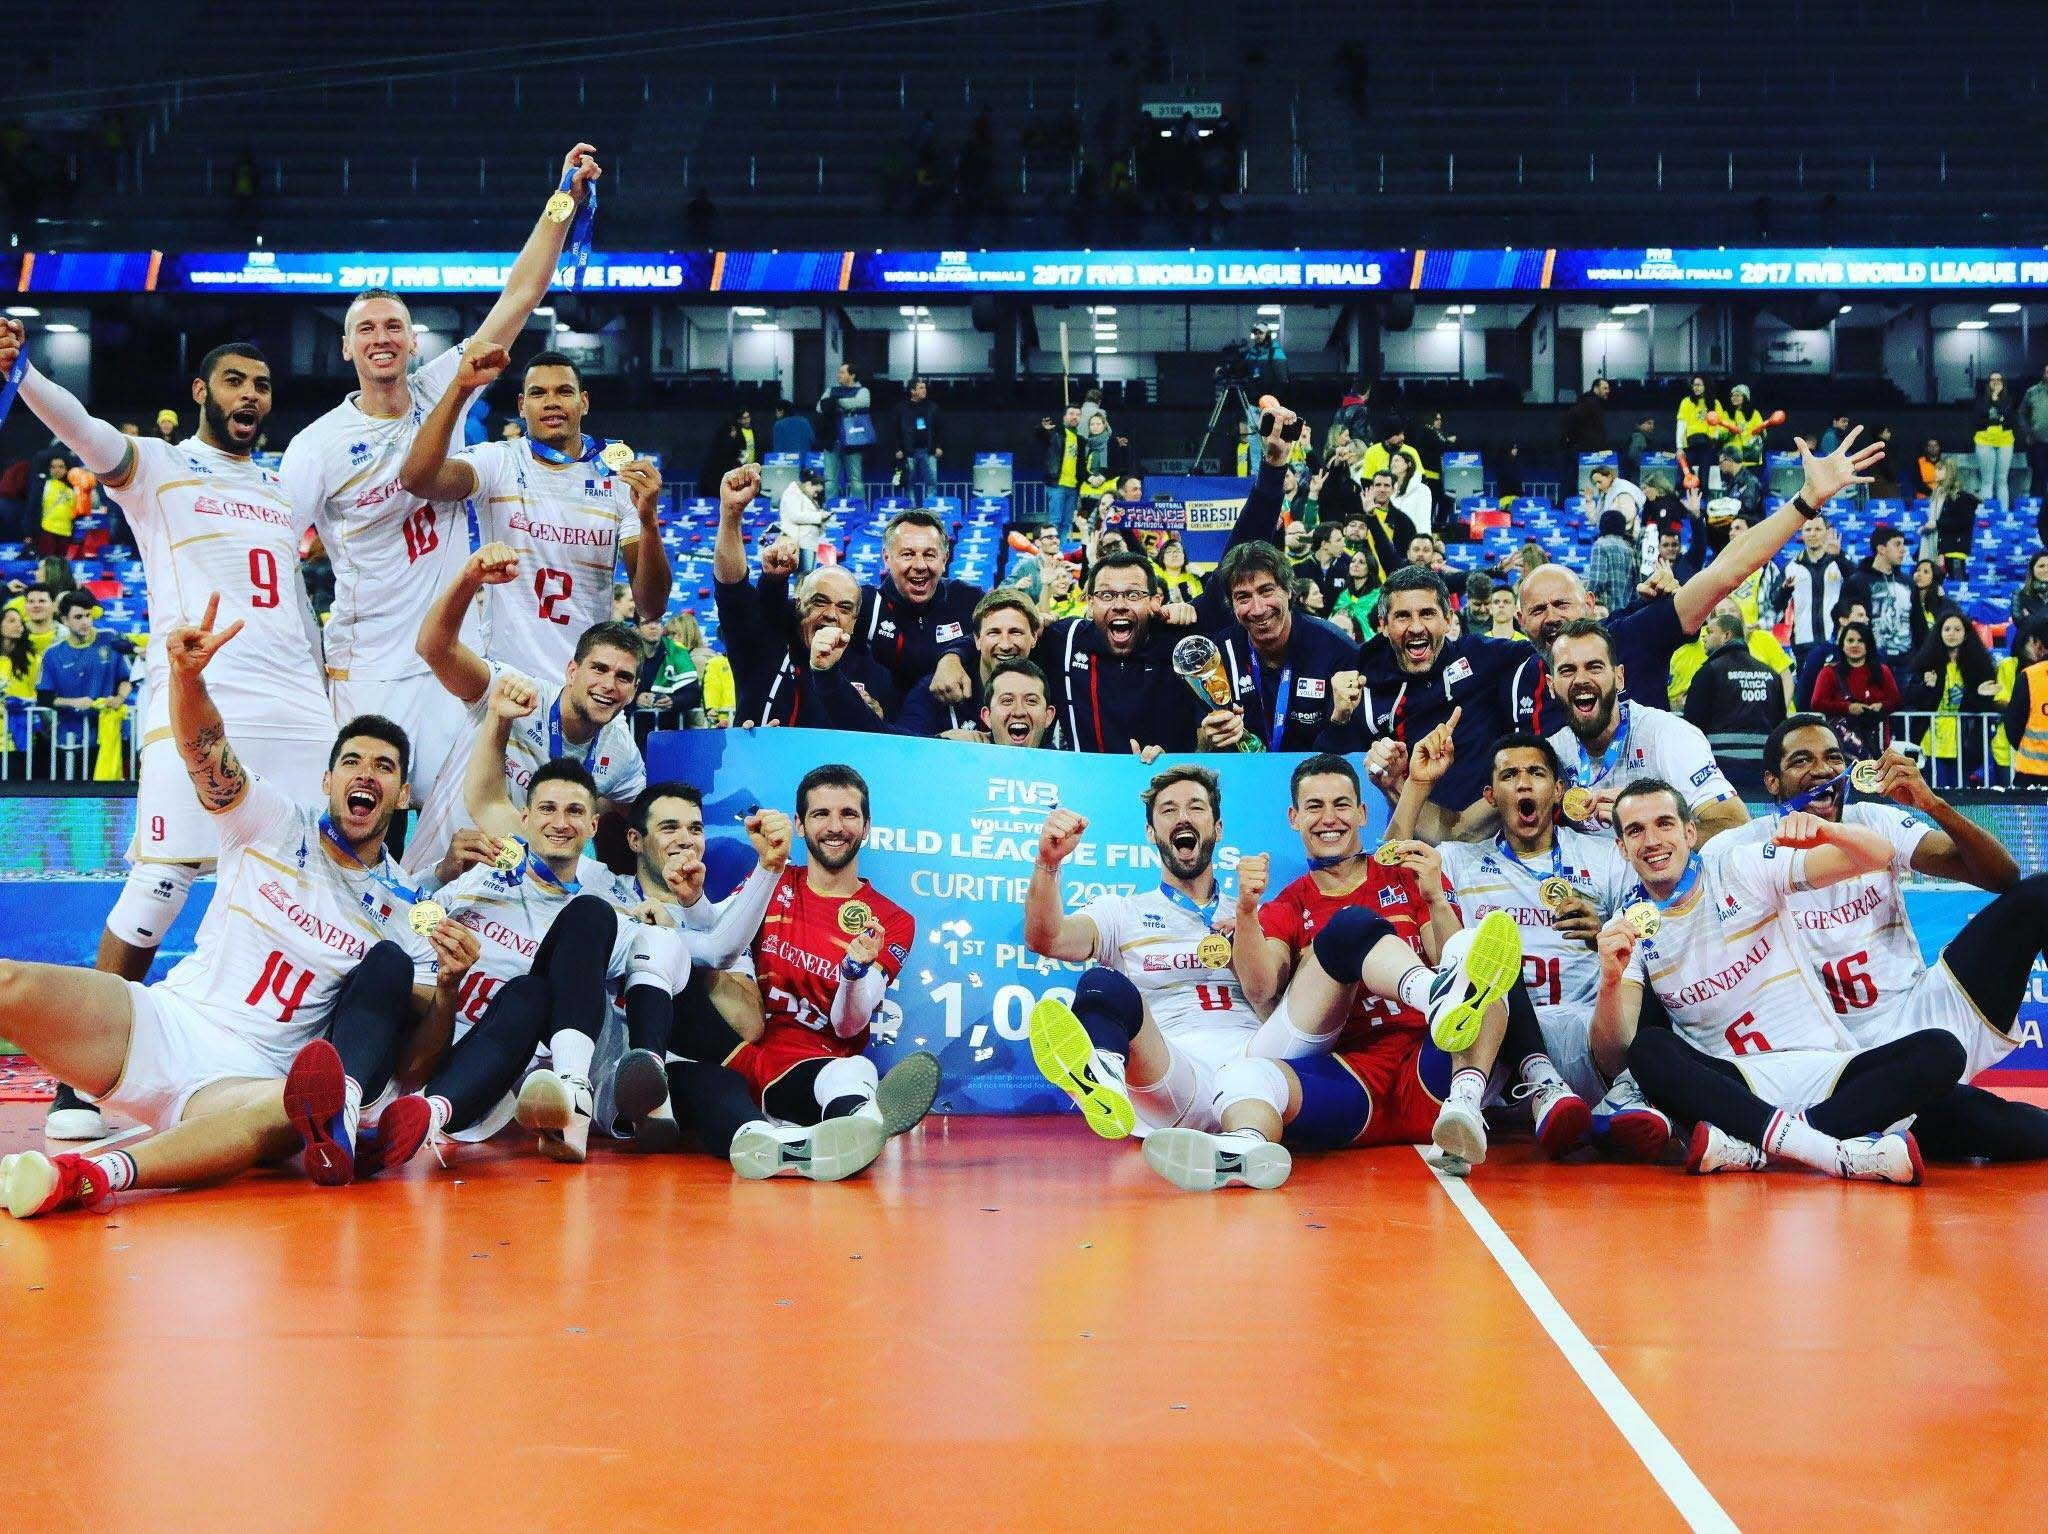 France triumphs at the World League and wins its second European Championship title